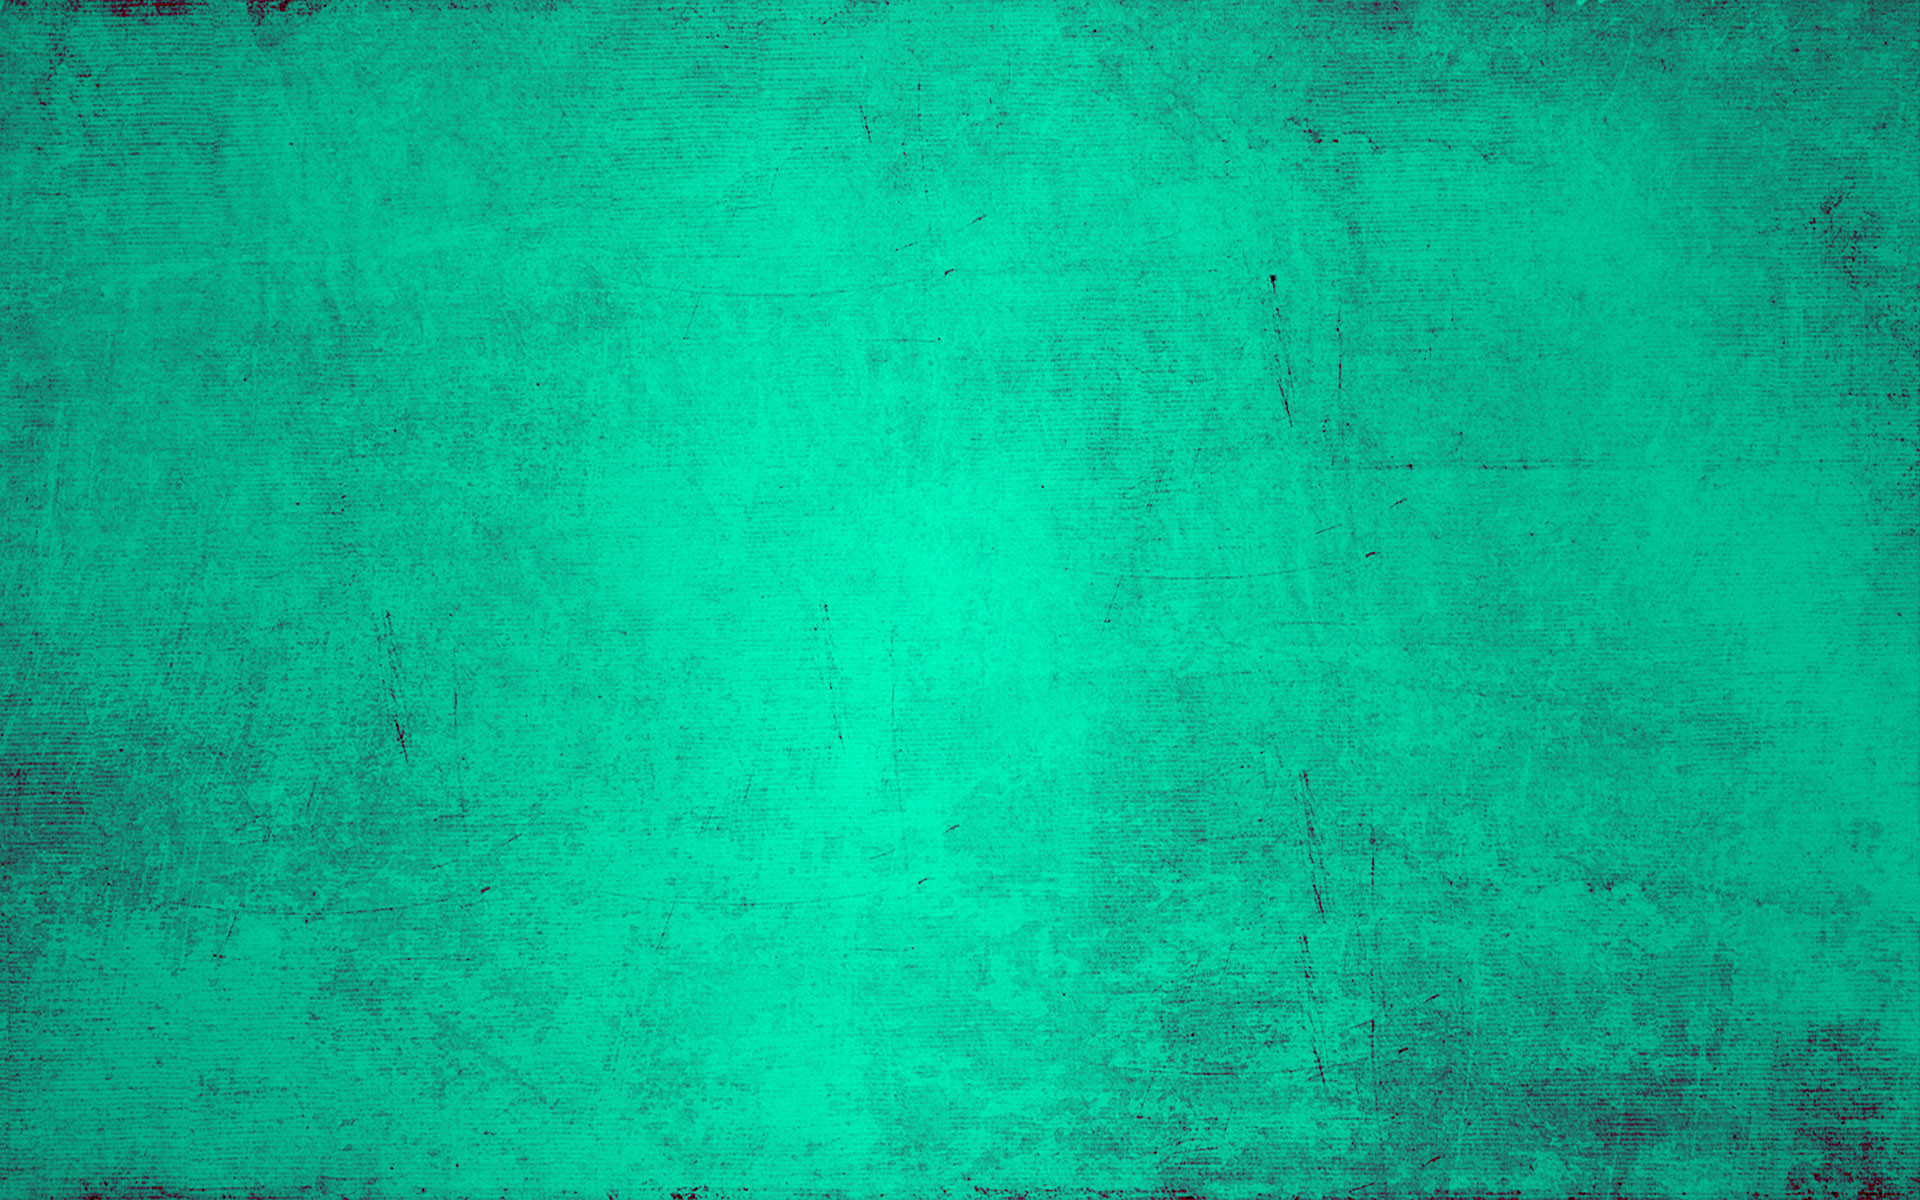 1920x1200 Images of Texture Desktop Wallpaper Teal Green - #SC ...